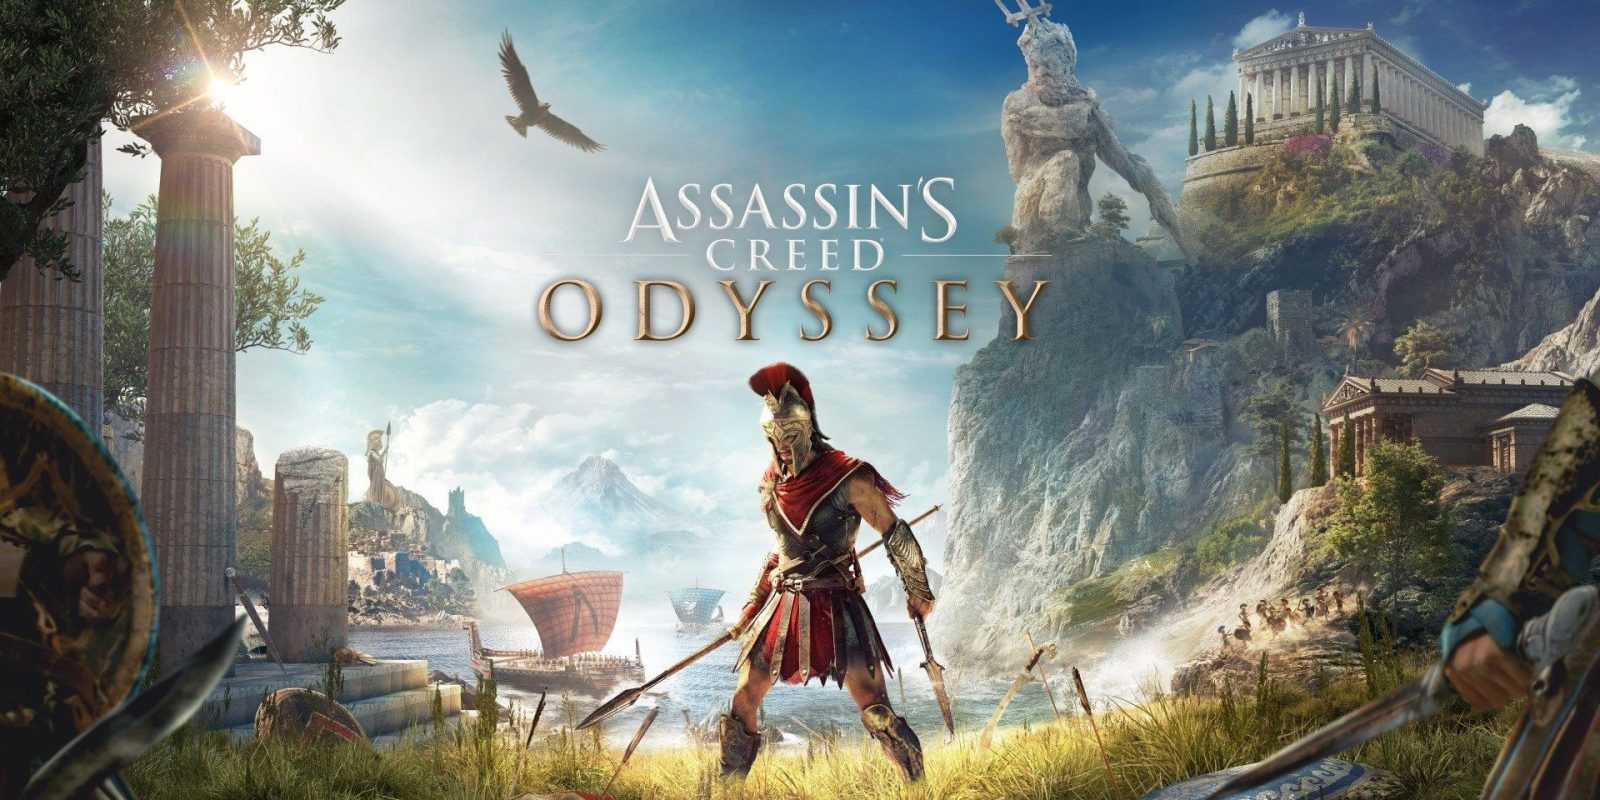 Today's Best Game Deals: Assassin's Creed Odyssey $20, Mario Maker 2 $45, more